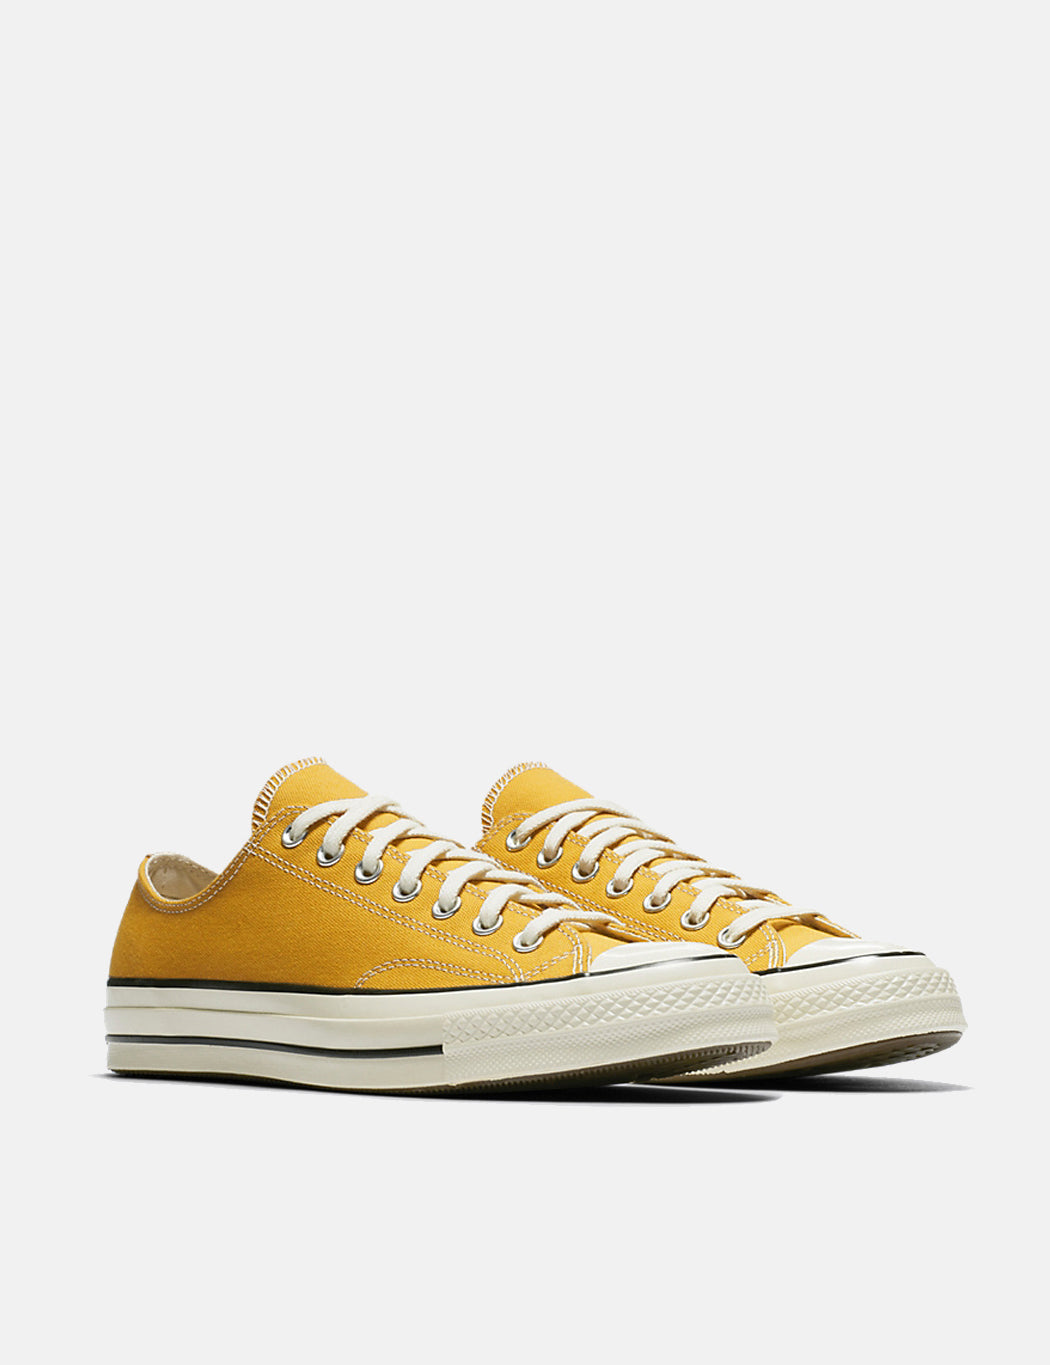 638bd0a8da0e ... Converse 70 s Chuck Taylor Low Canvas (162063C) - Sunflower Yellow ...